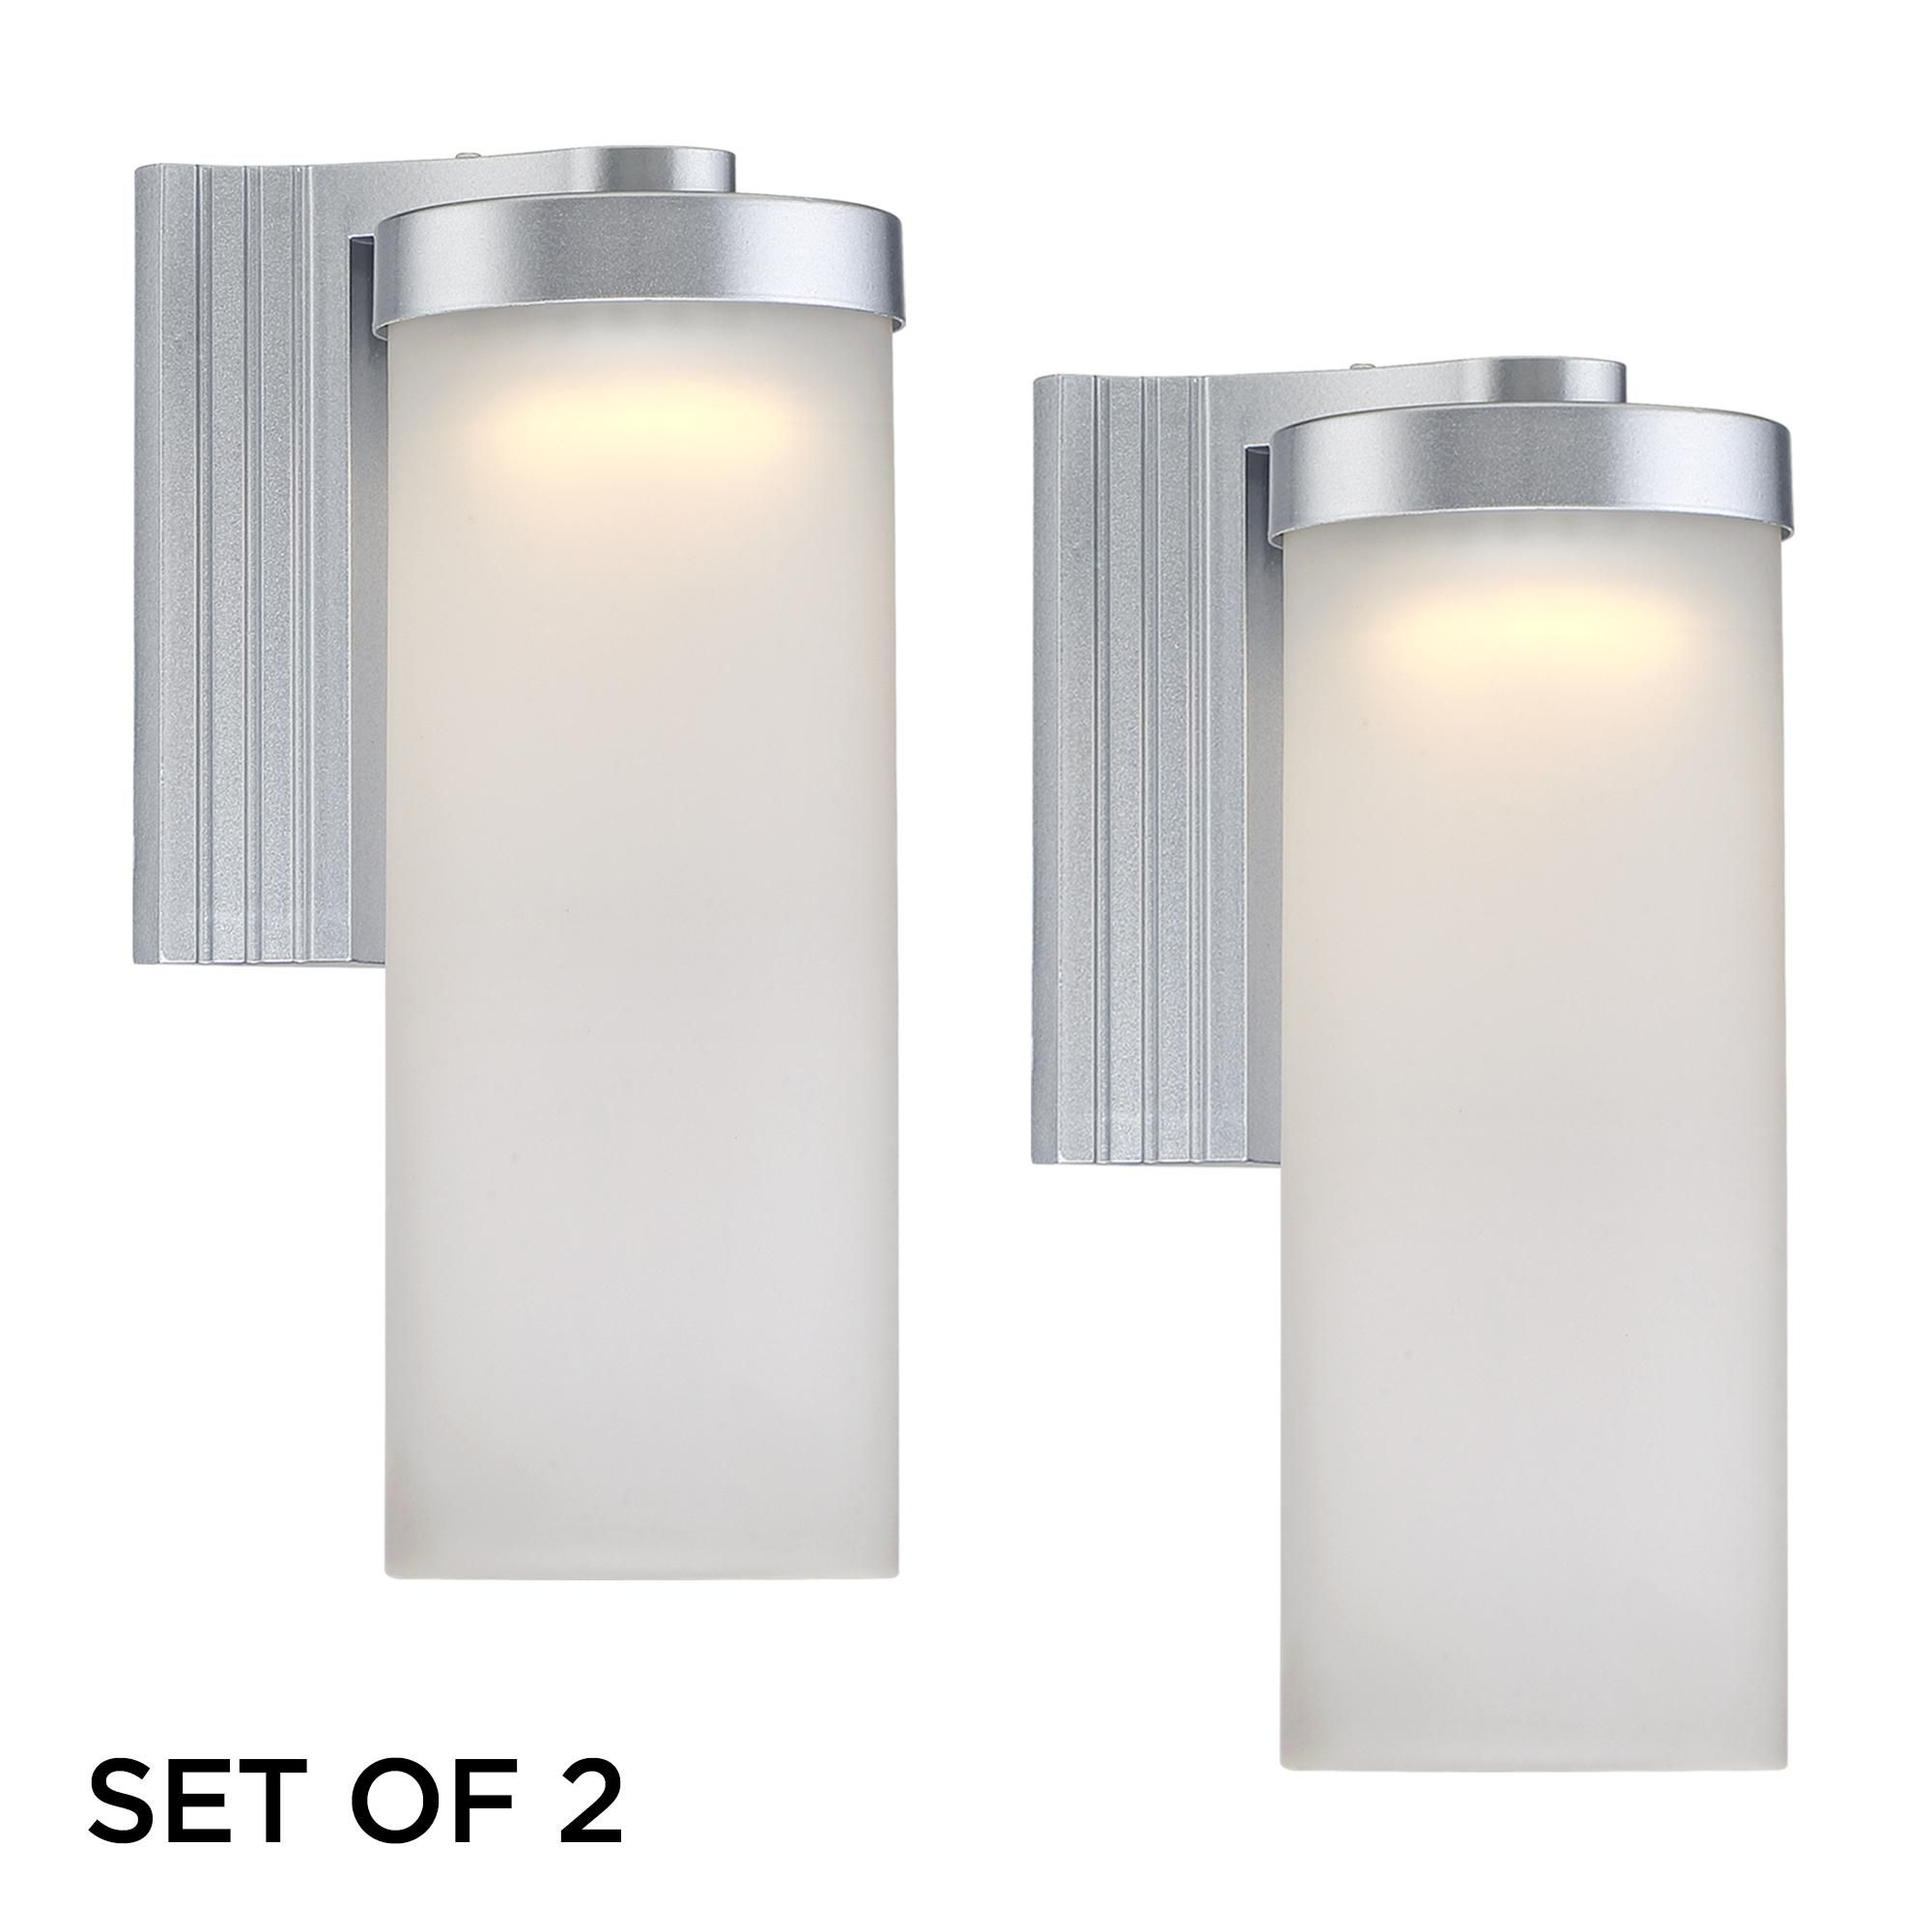 Set of 2 cleo 10 12 high silver led outdoor wall lights style set of 2 cleo 10 12 high silver led outdoor wall lights arubaitofo Image collections